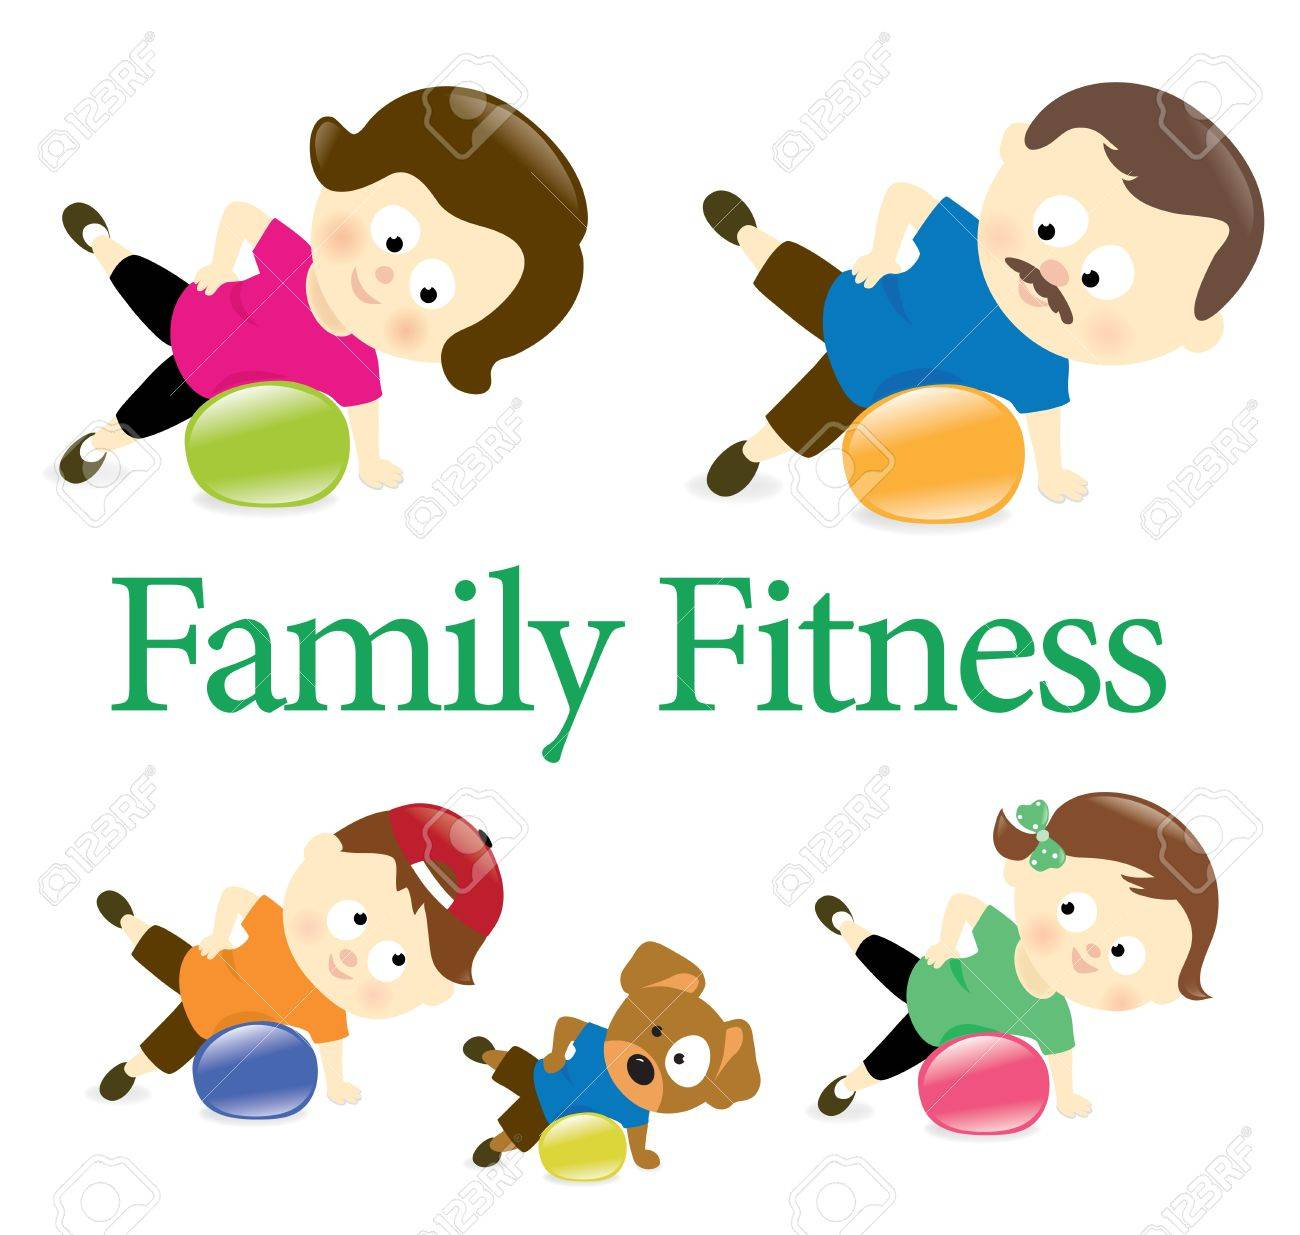 Family fitness with exercise ball Stock Vector - 19113327